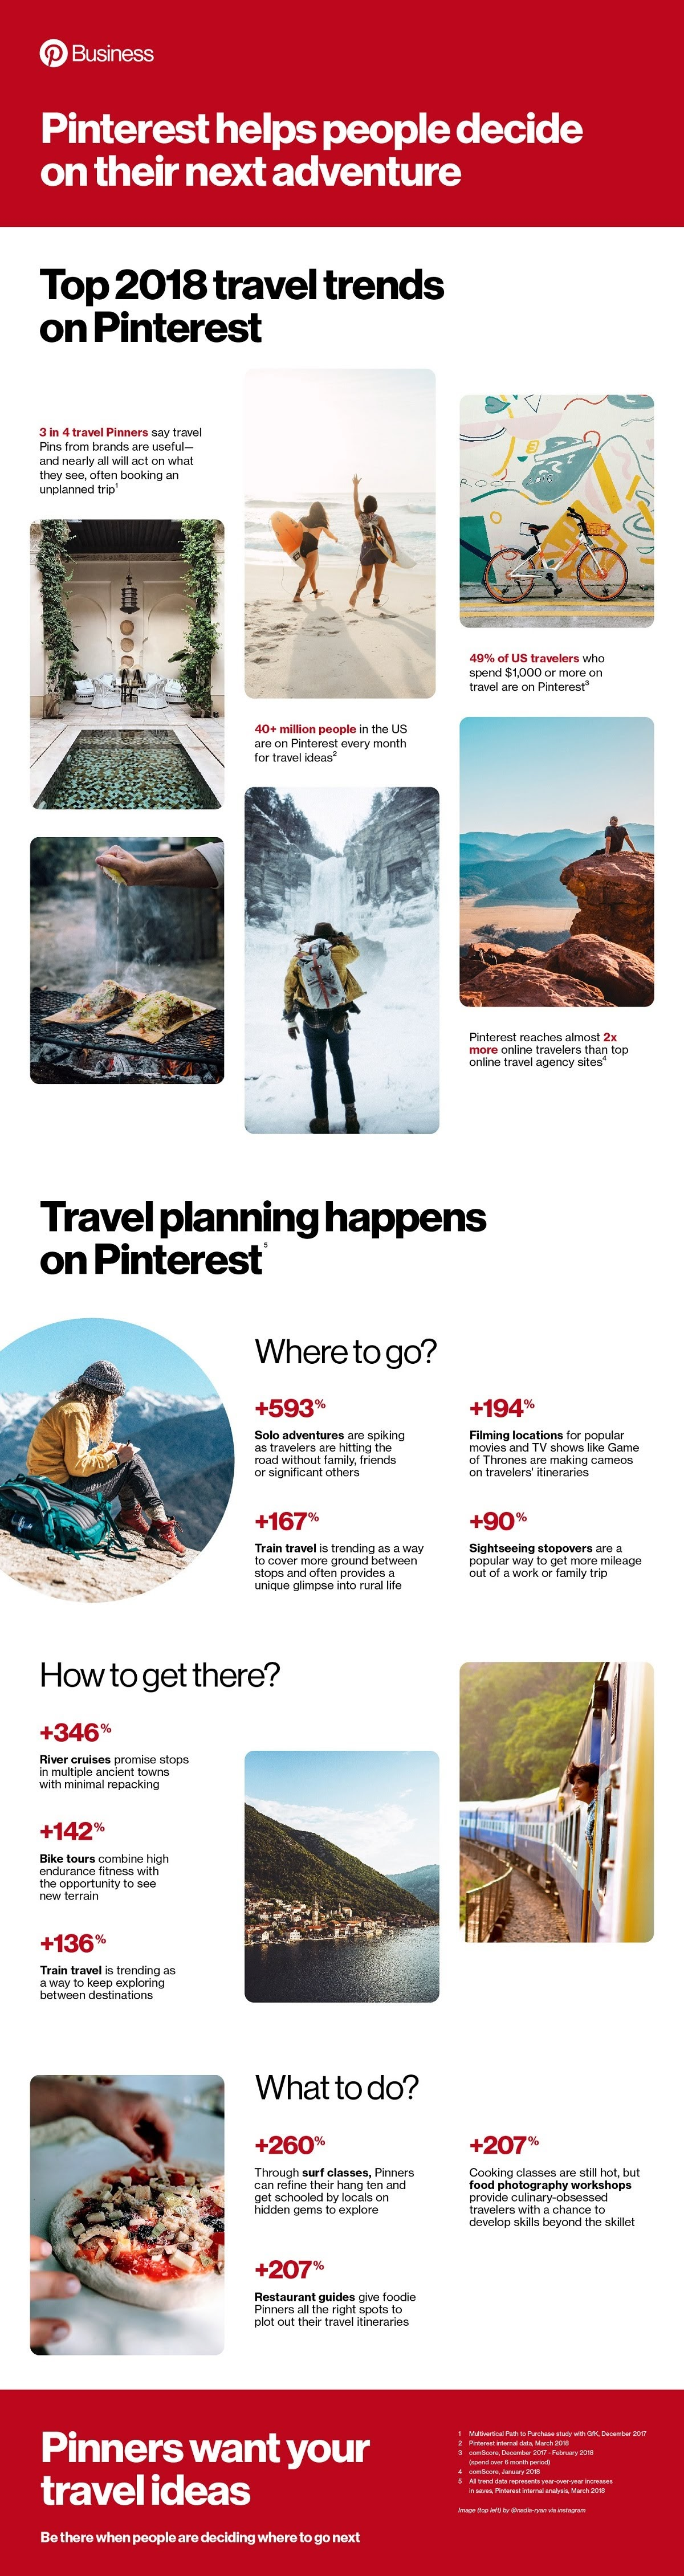 Pinterest Helps People Decide On Their Next Adventure #Infographic